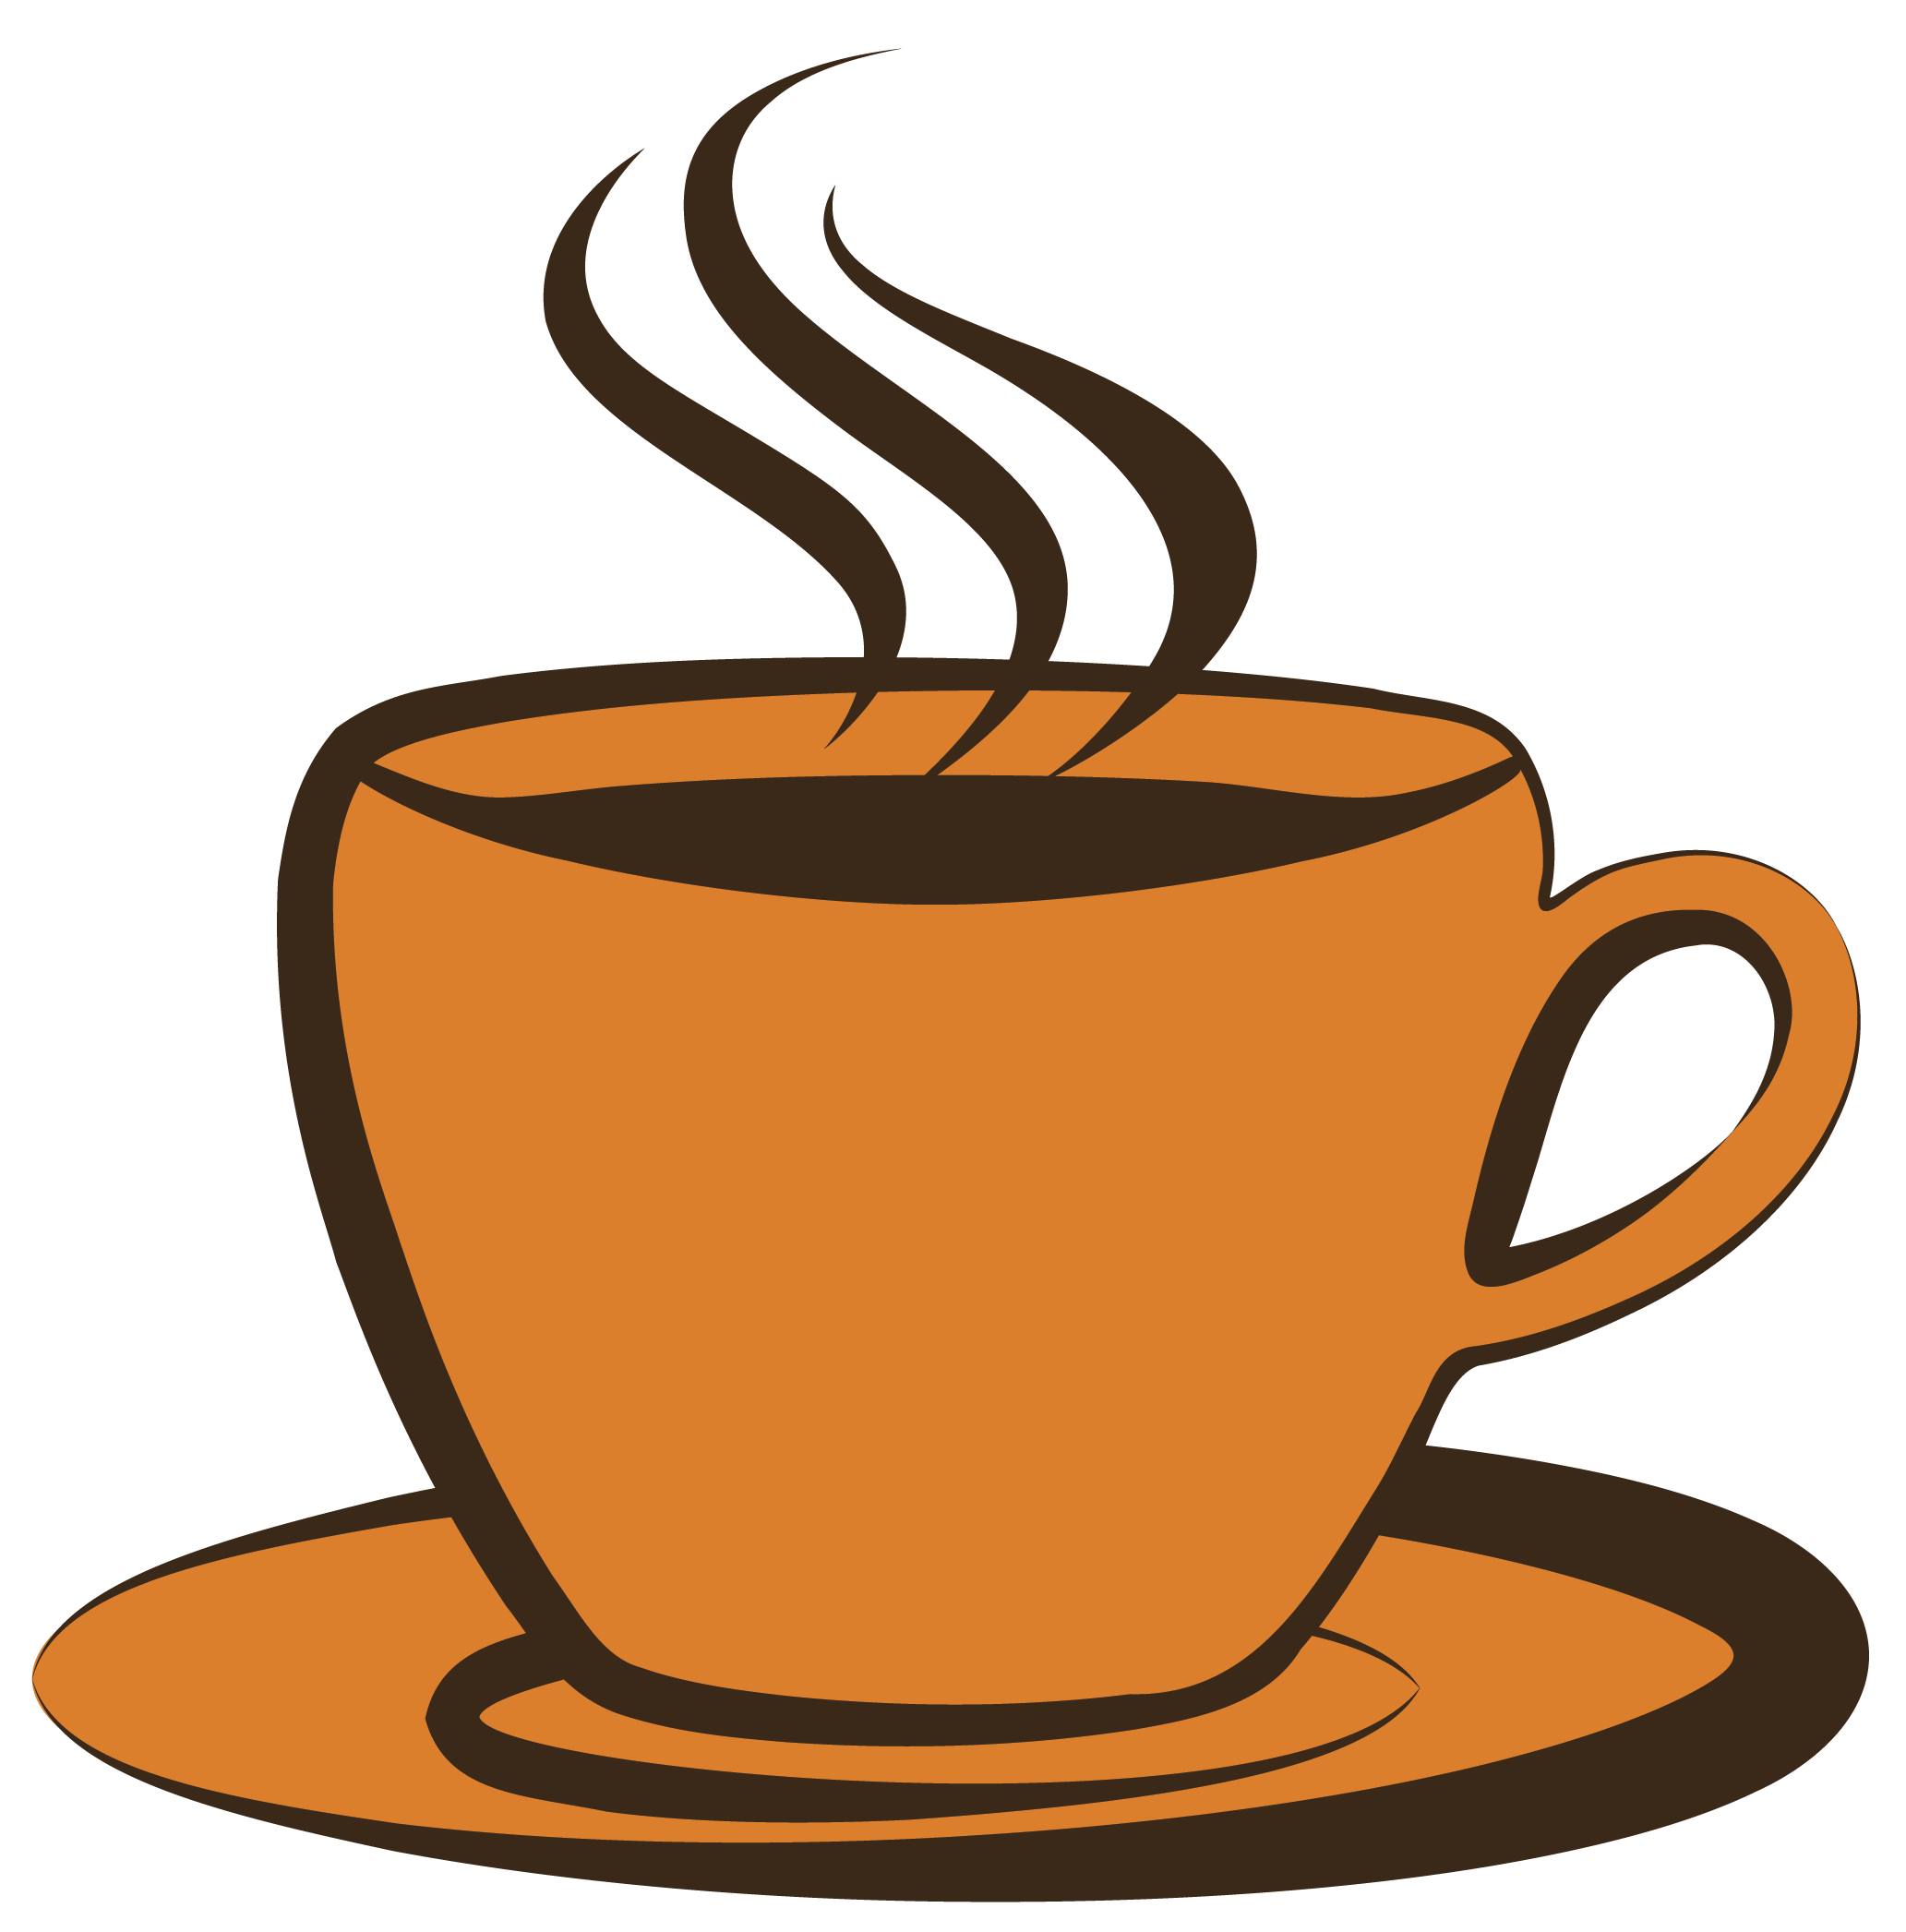 Coffee house clipart banner free stock grab a cup of your favorite coffee (or tea or other hot drink) and ... banner free stock